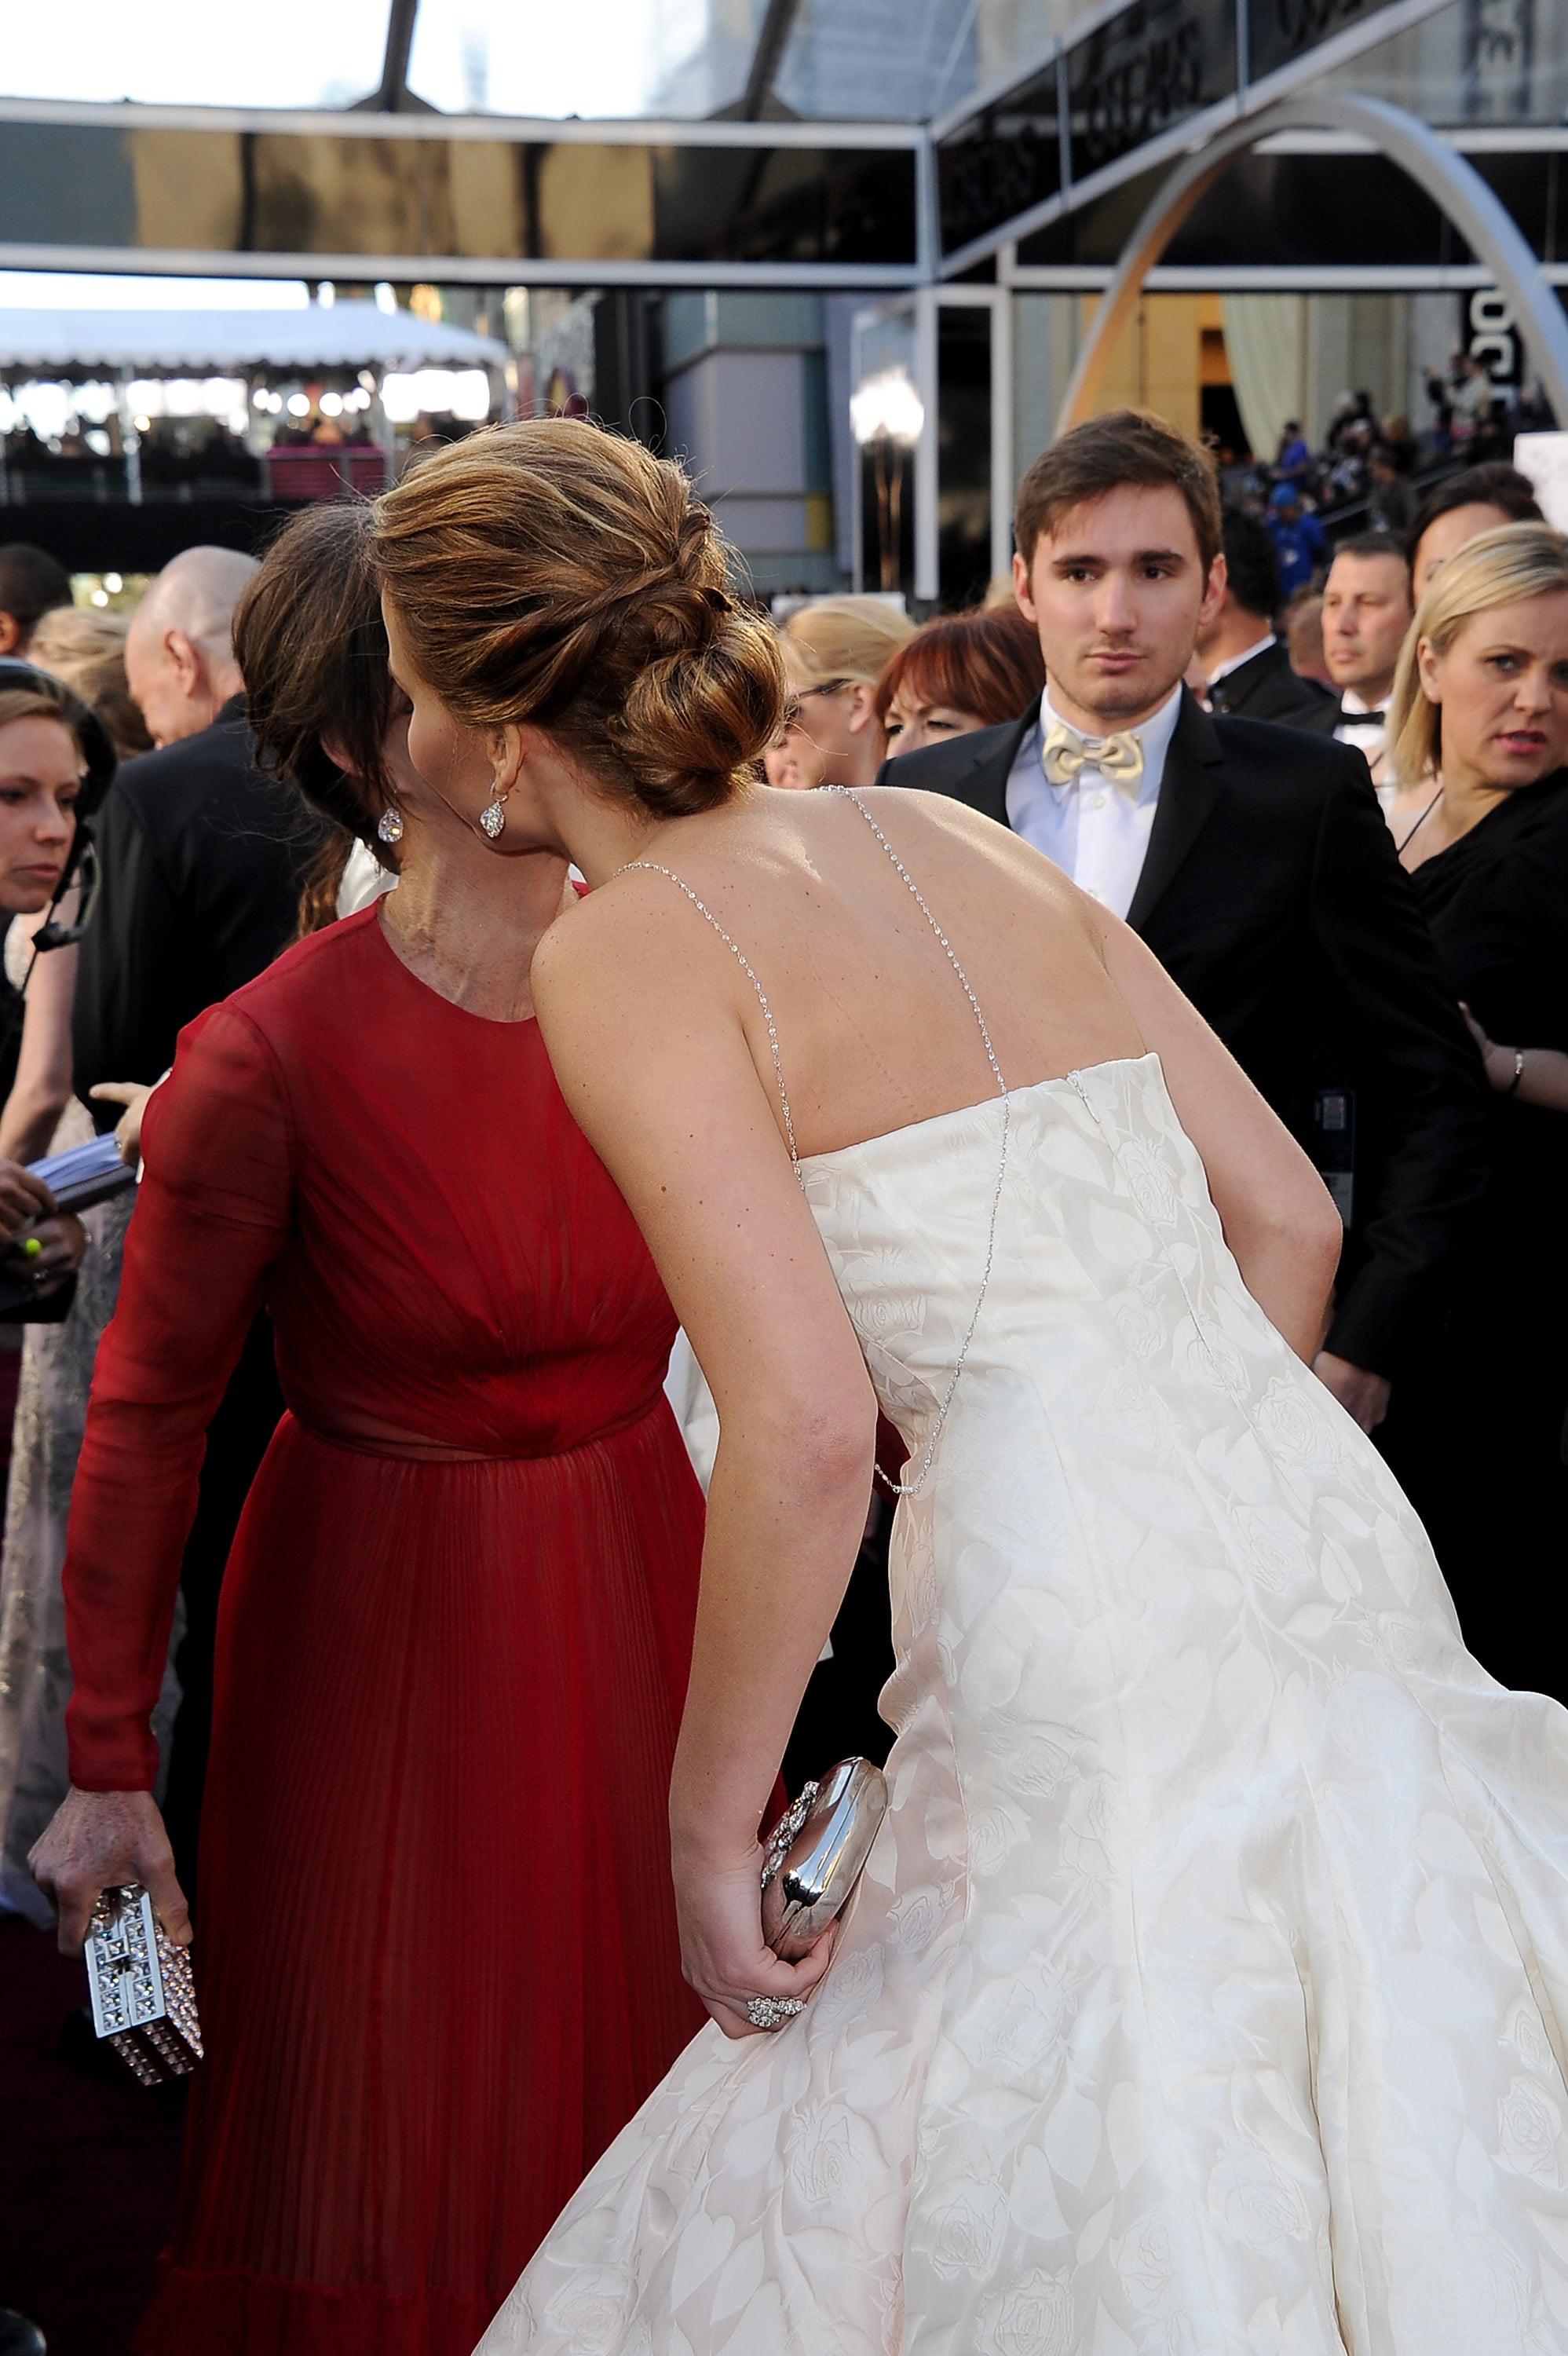 Jennifer Lawrence greeted Sally Field on the red carpet at the Oscars 2013.